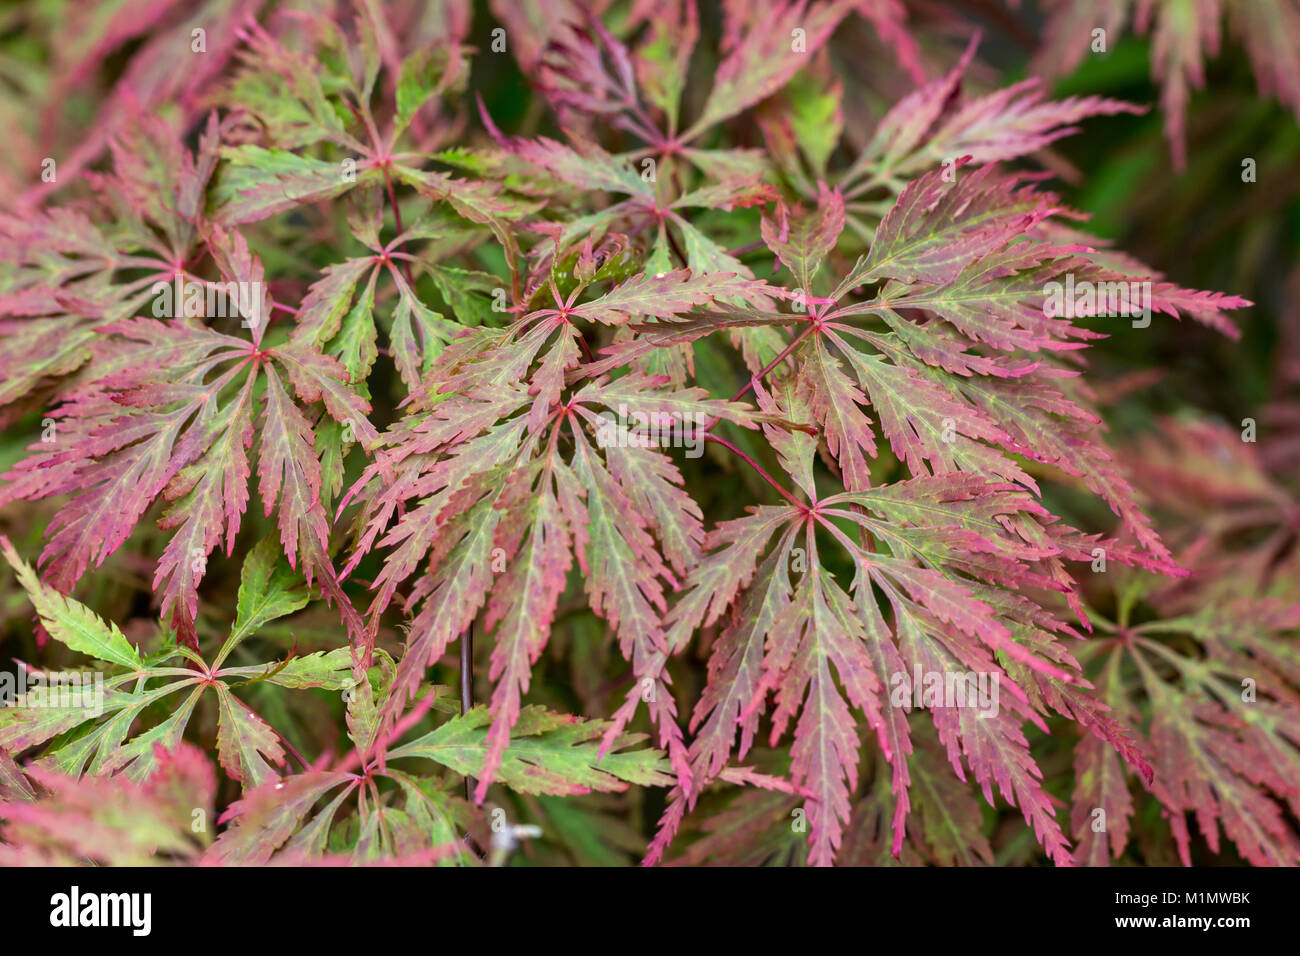 The leaves of a Japanese Maple plant - Stock Image